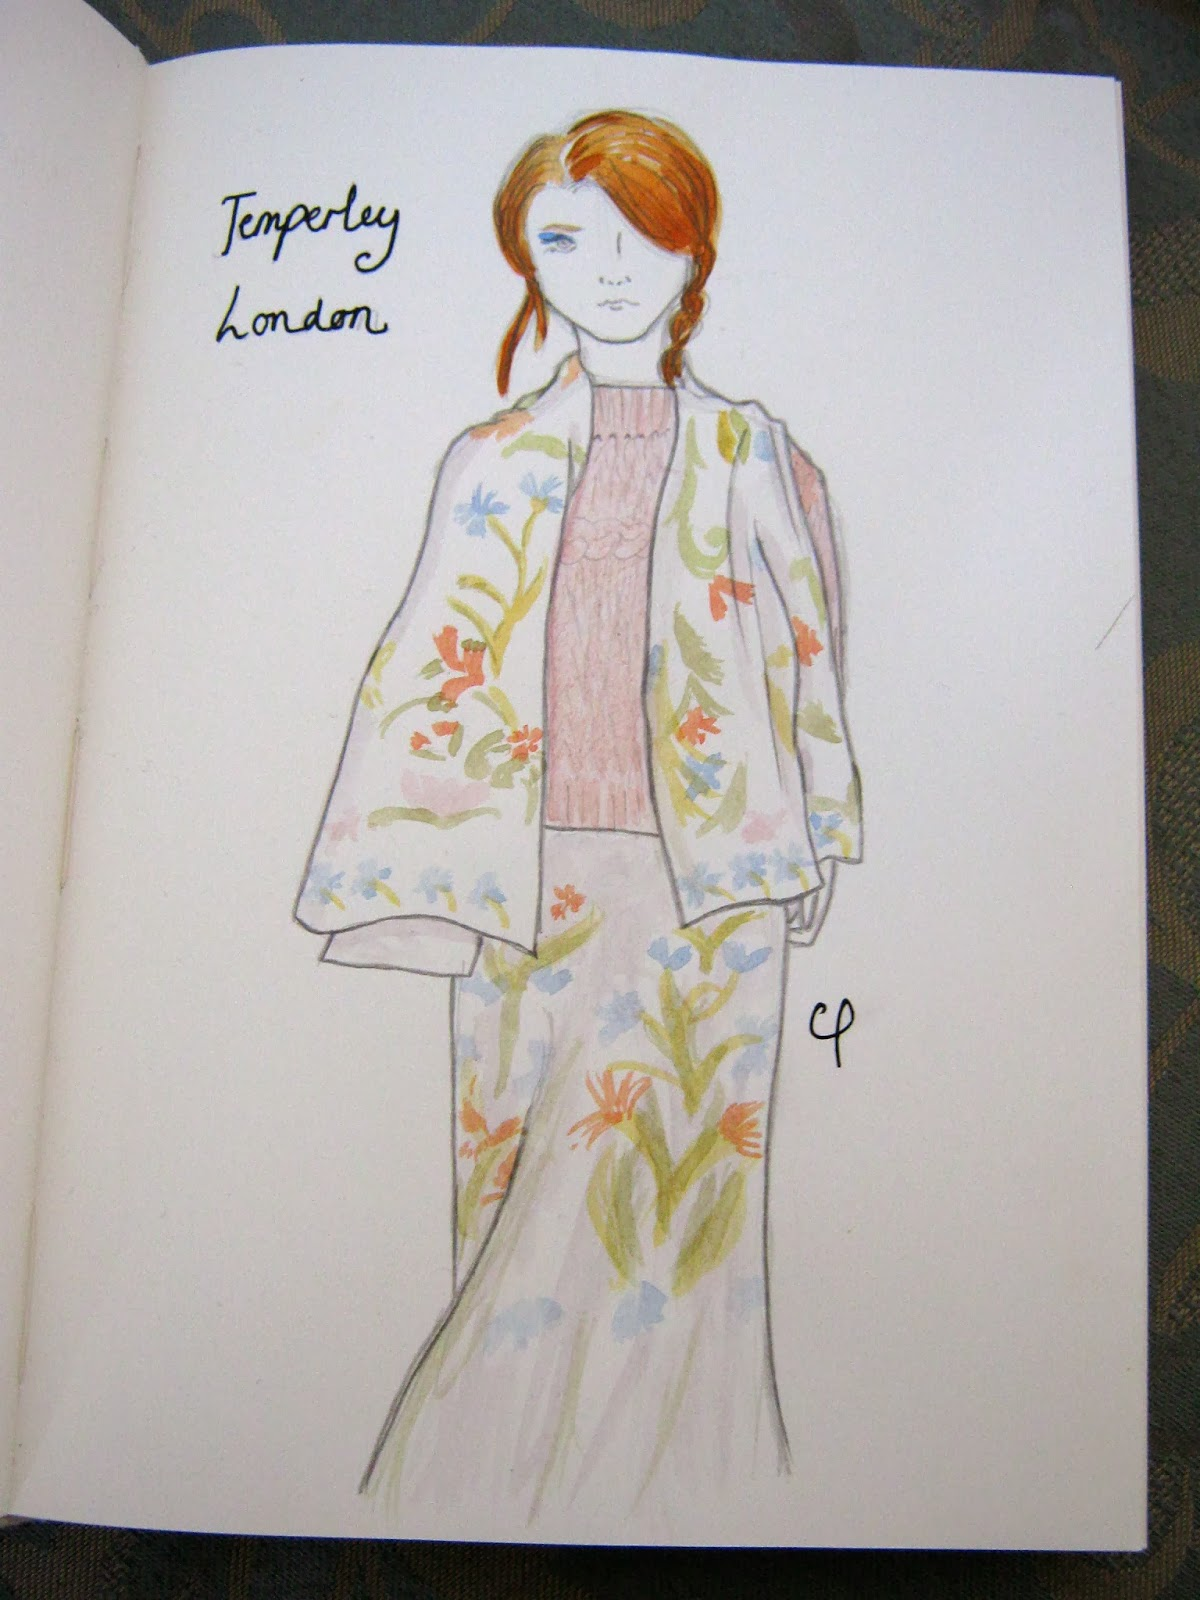 Temperley London Florals Fashion Illustration